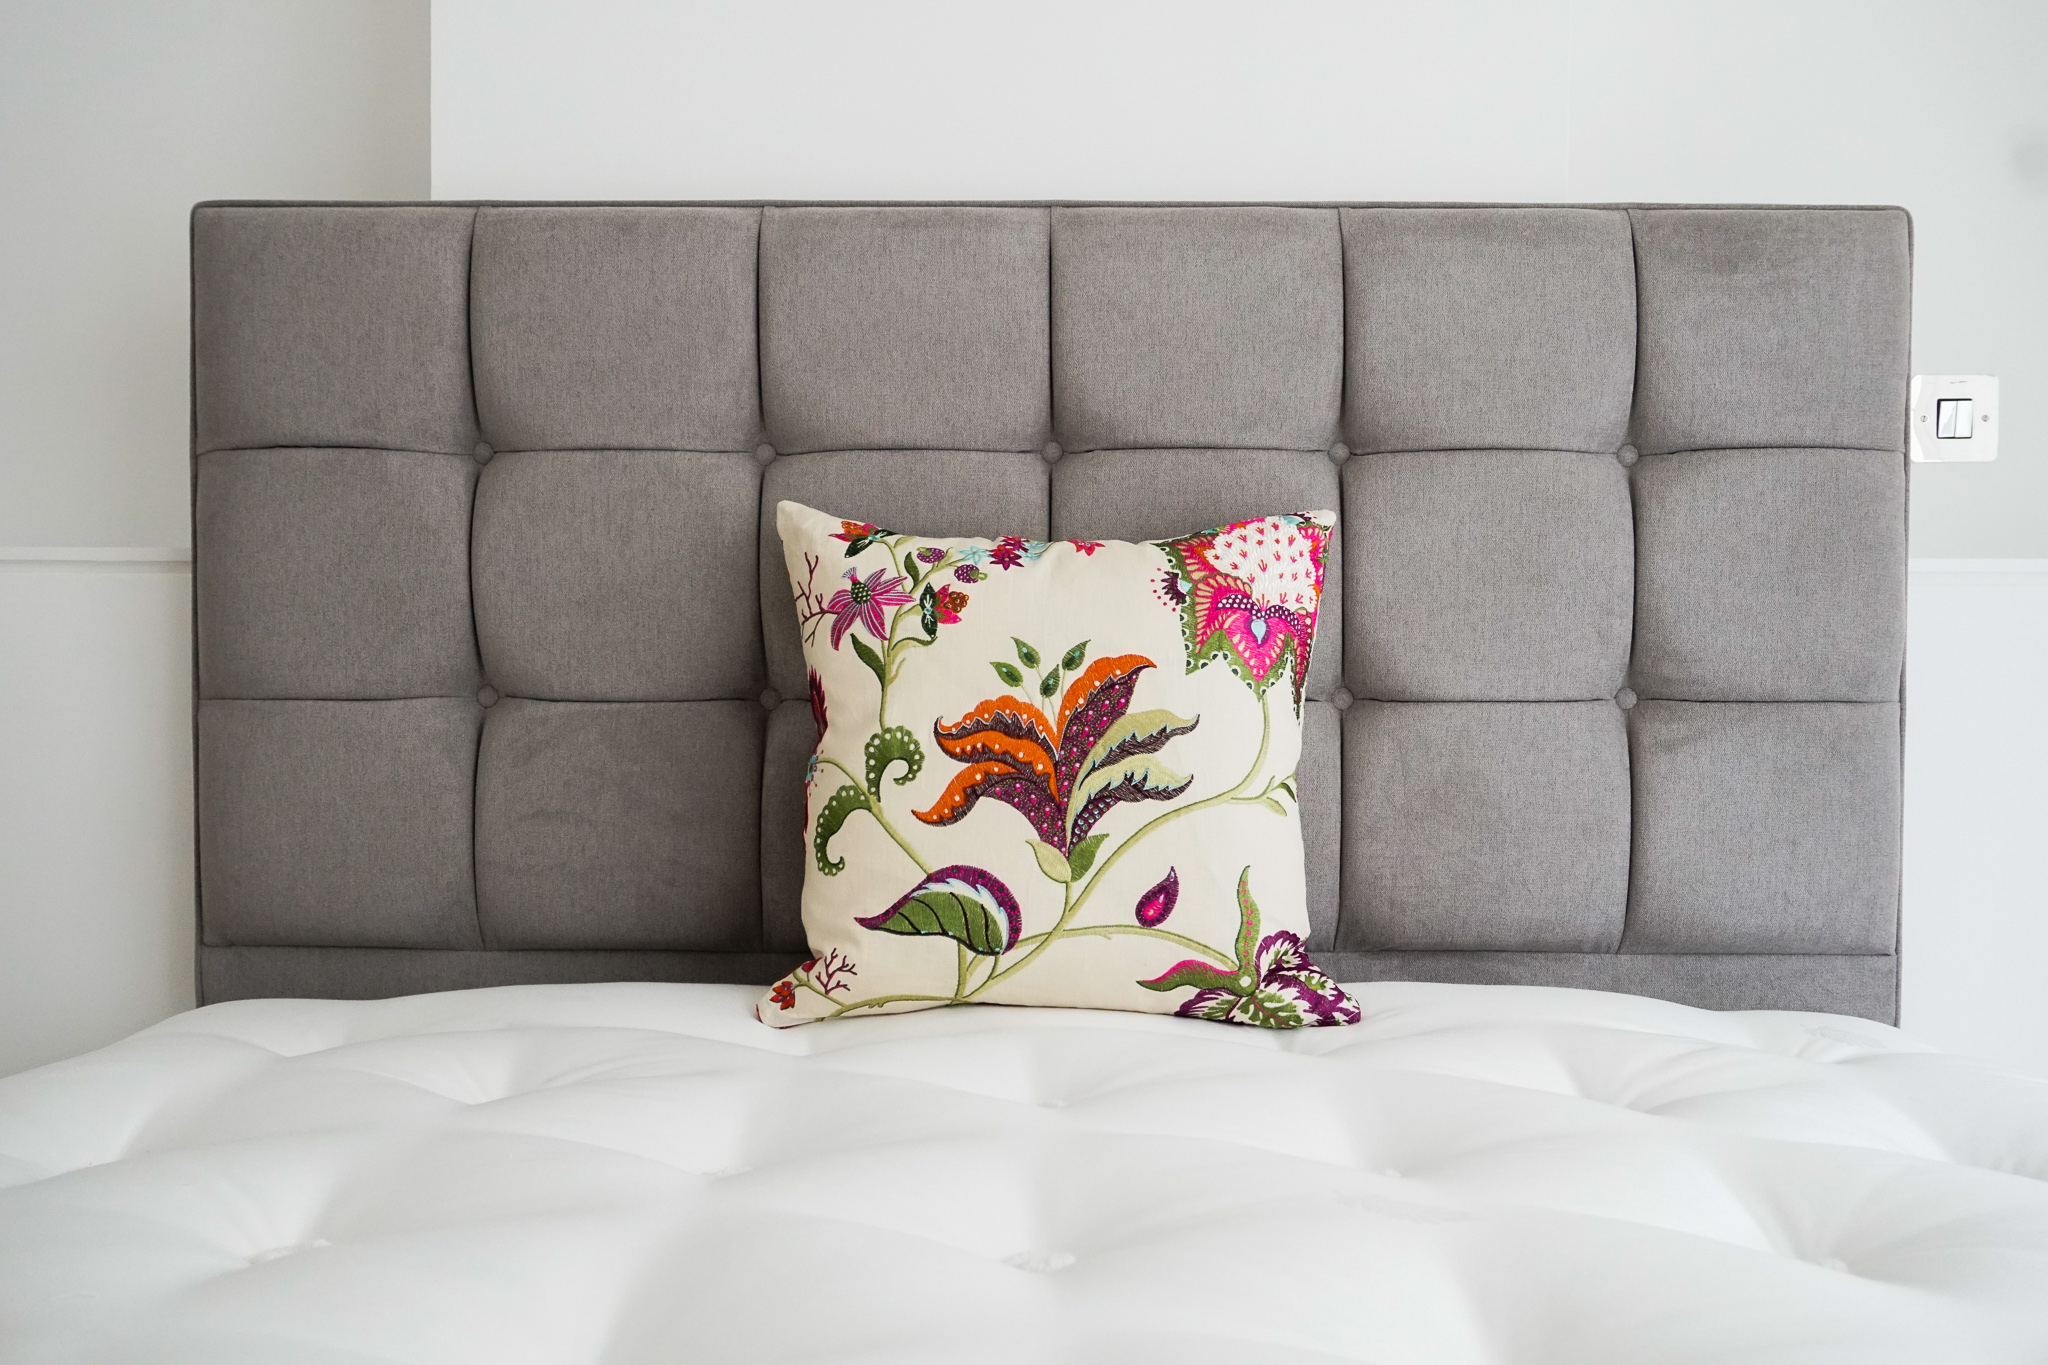 Bespoke upholstered cushion against headboard